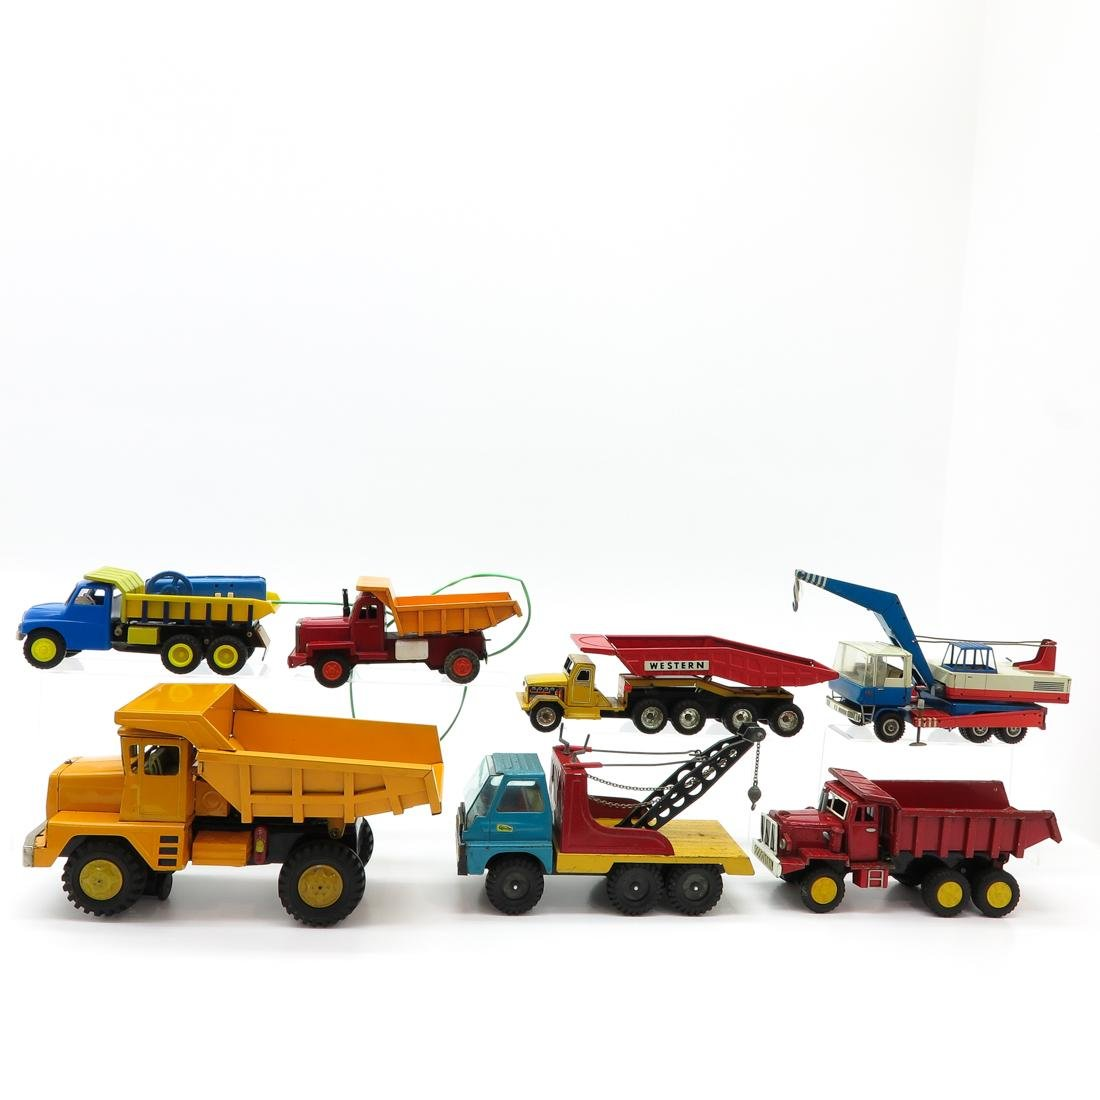 Lot of 7 Vintage Toy Trucks and Tractors